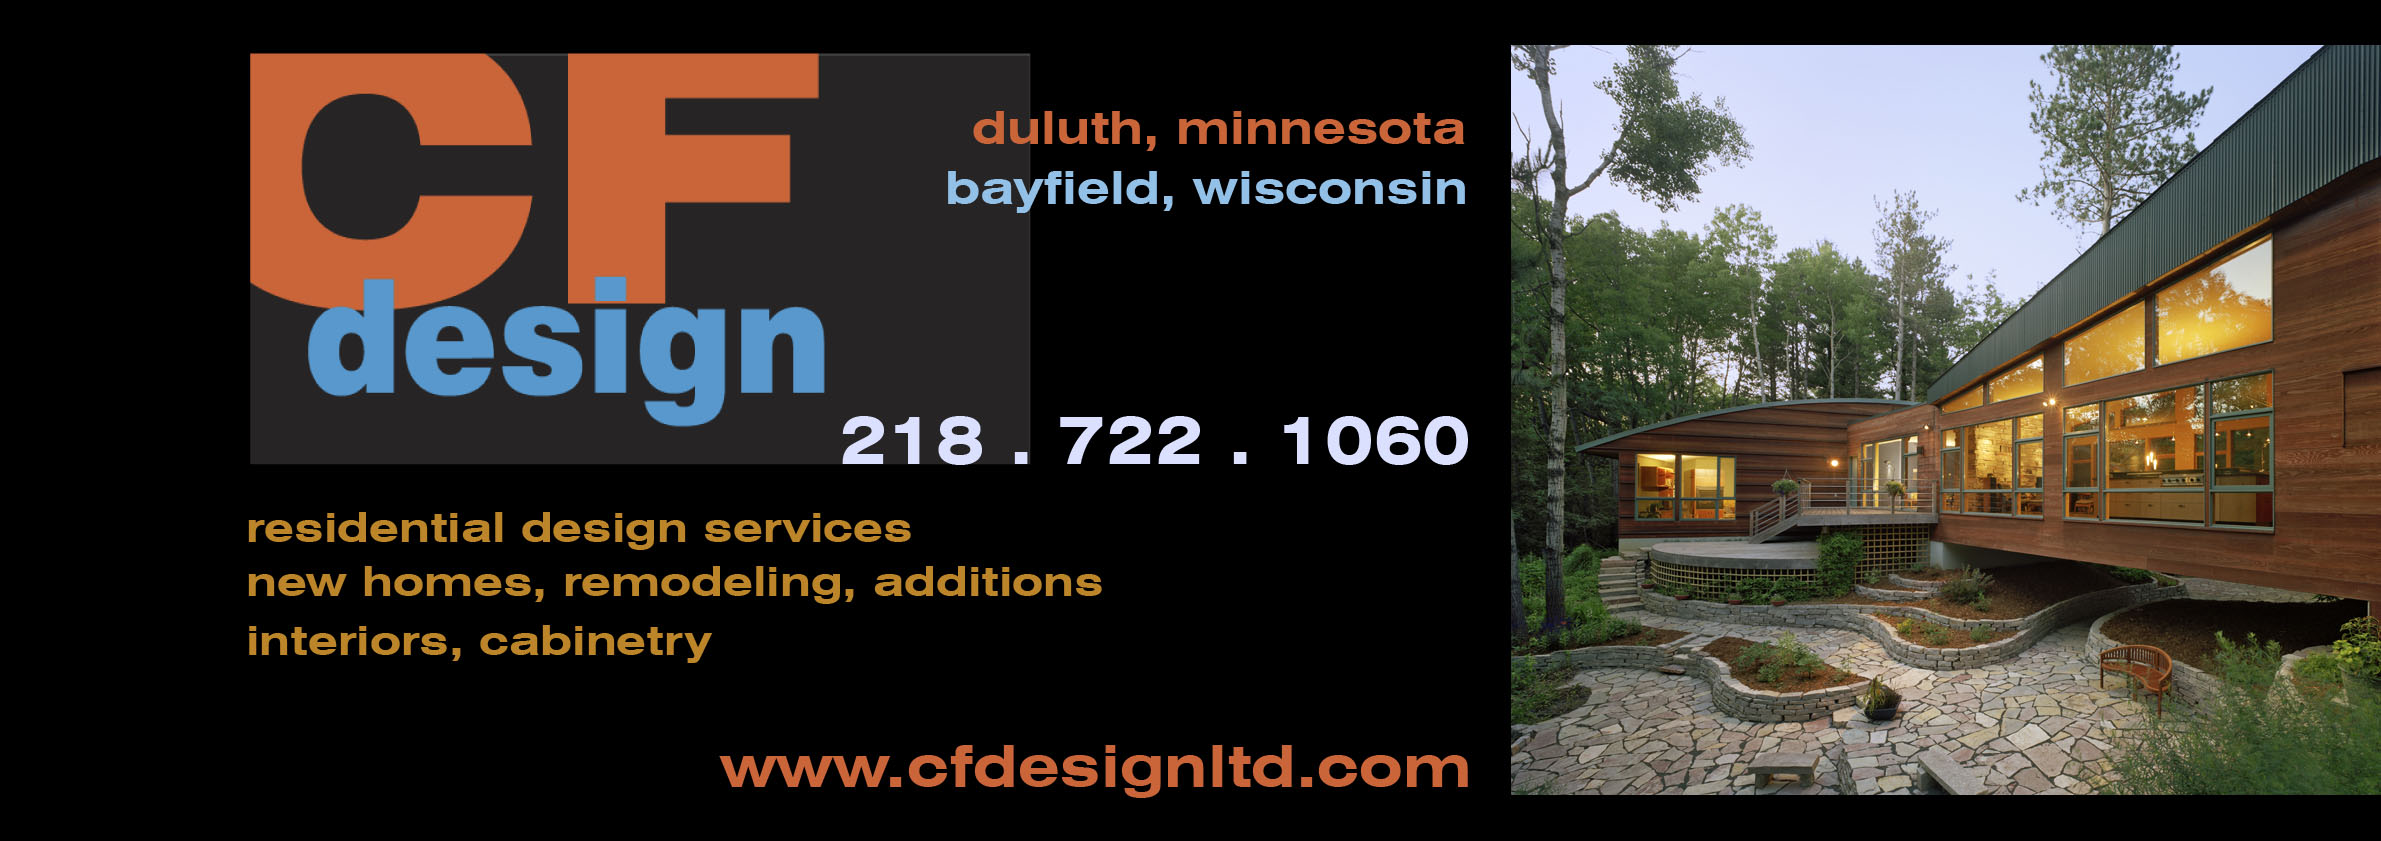 home design duluth minnesota cf design real estate duluth mn 55807 free home design ideas images